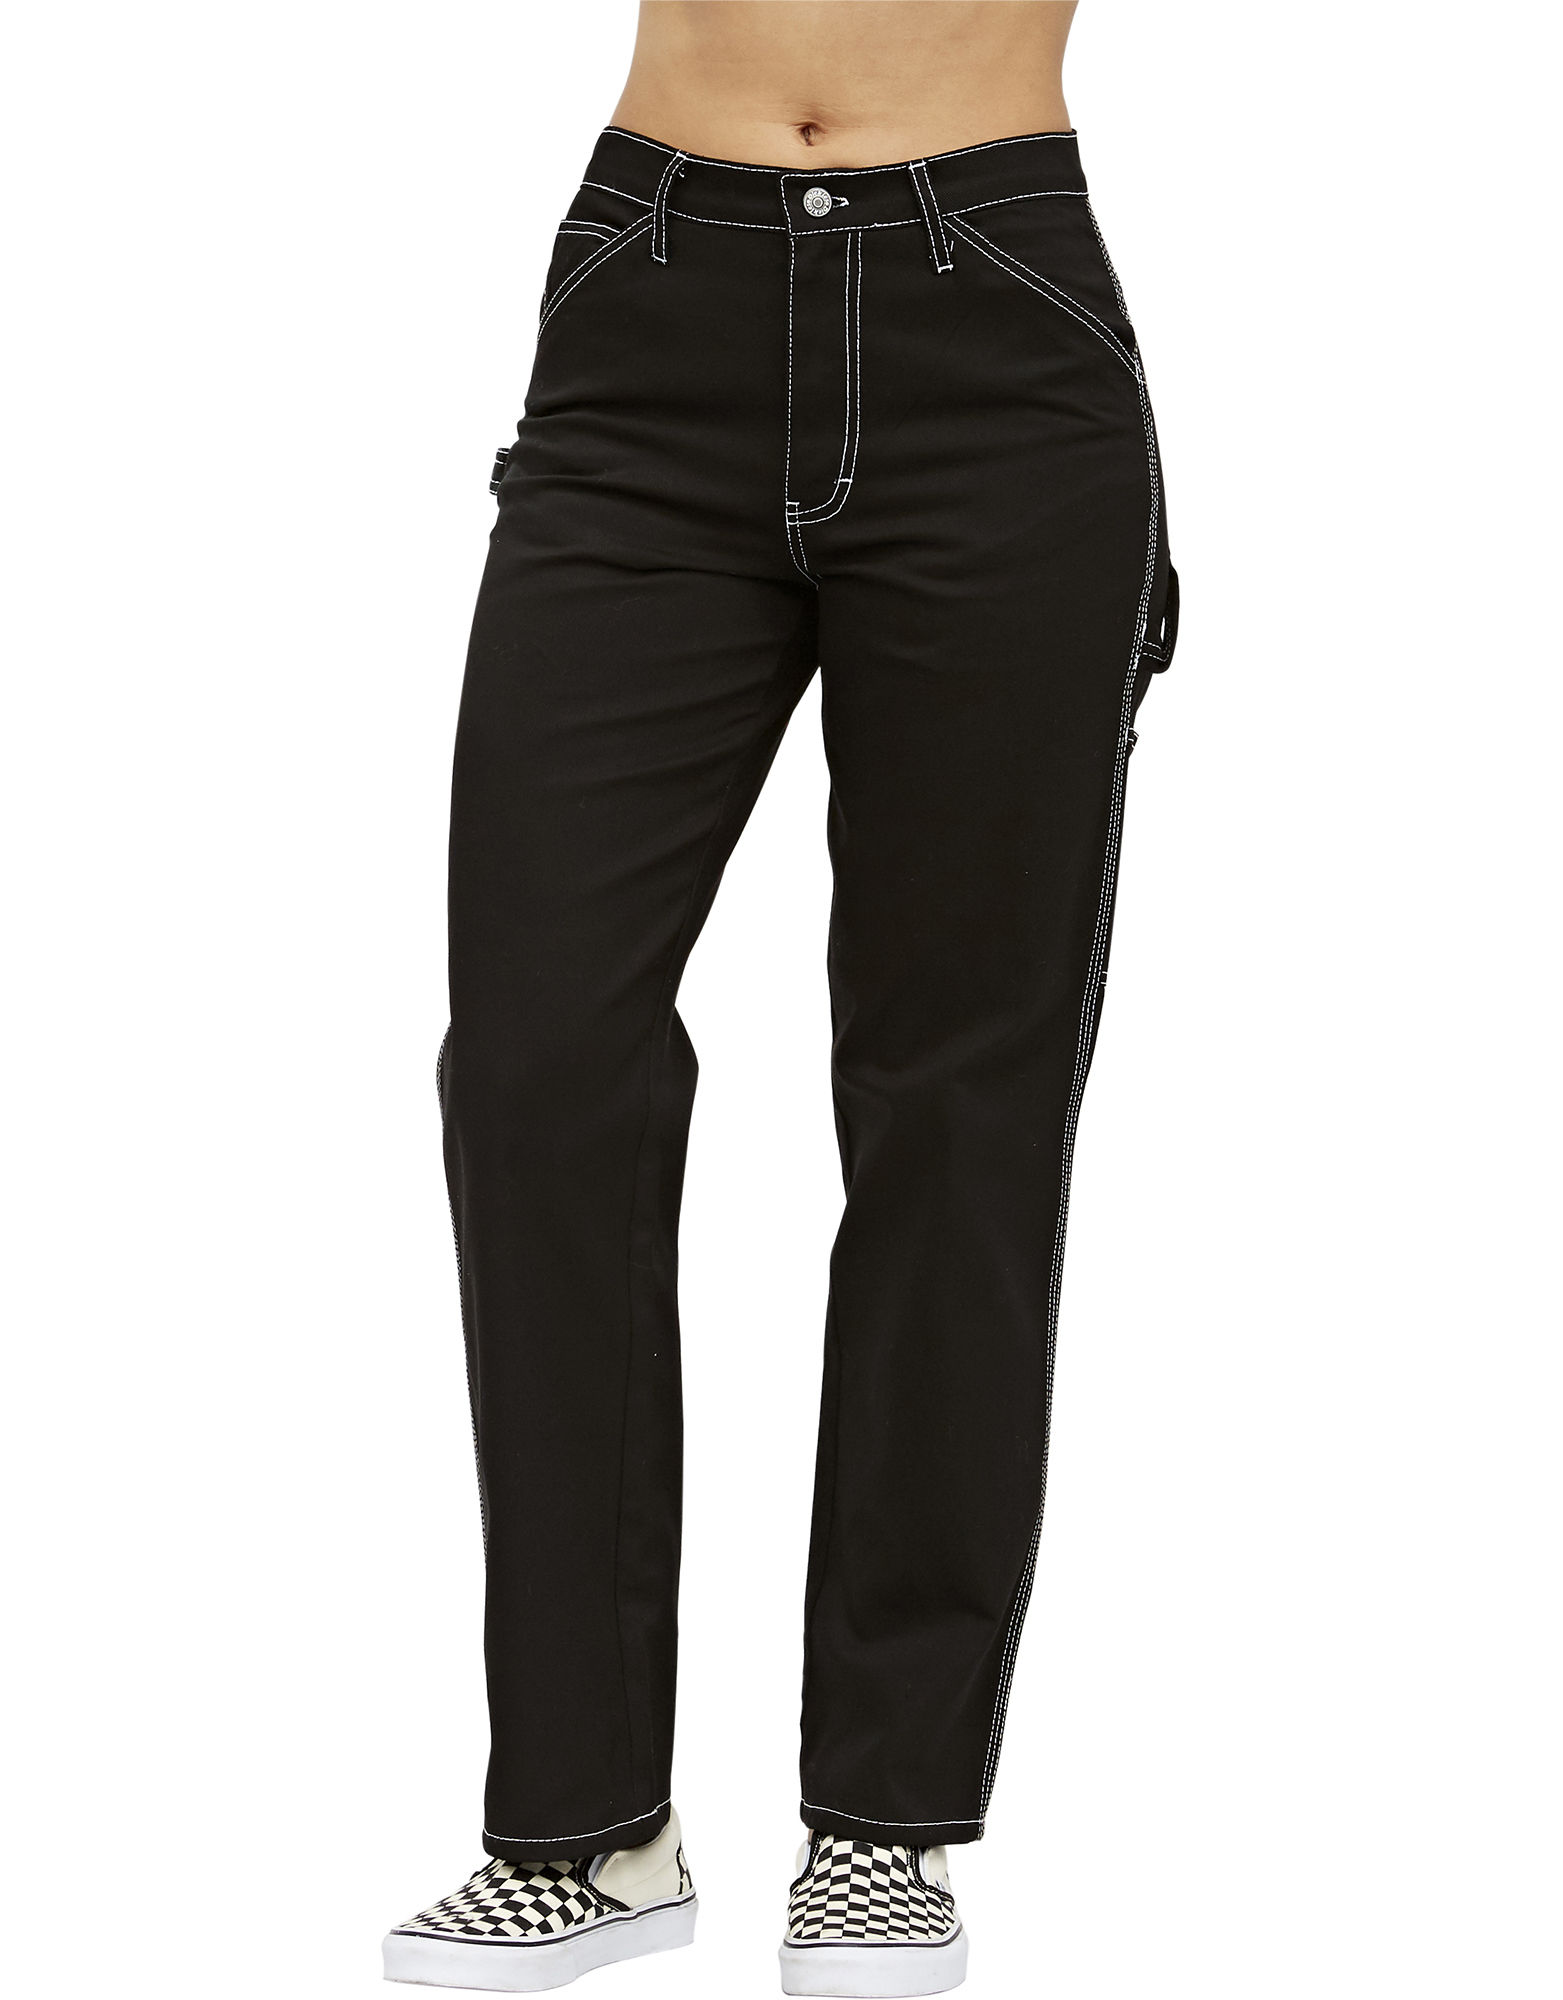 Dickies Girl Relaxed Fit Carpenter Pant Black 7| Dickies